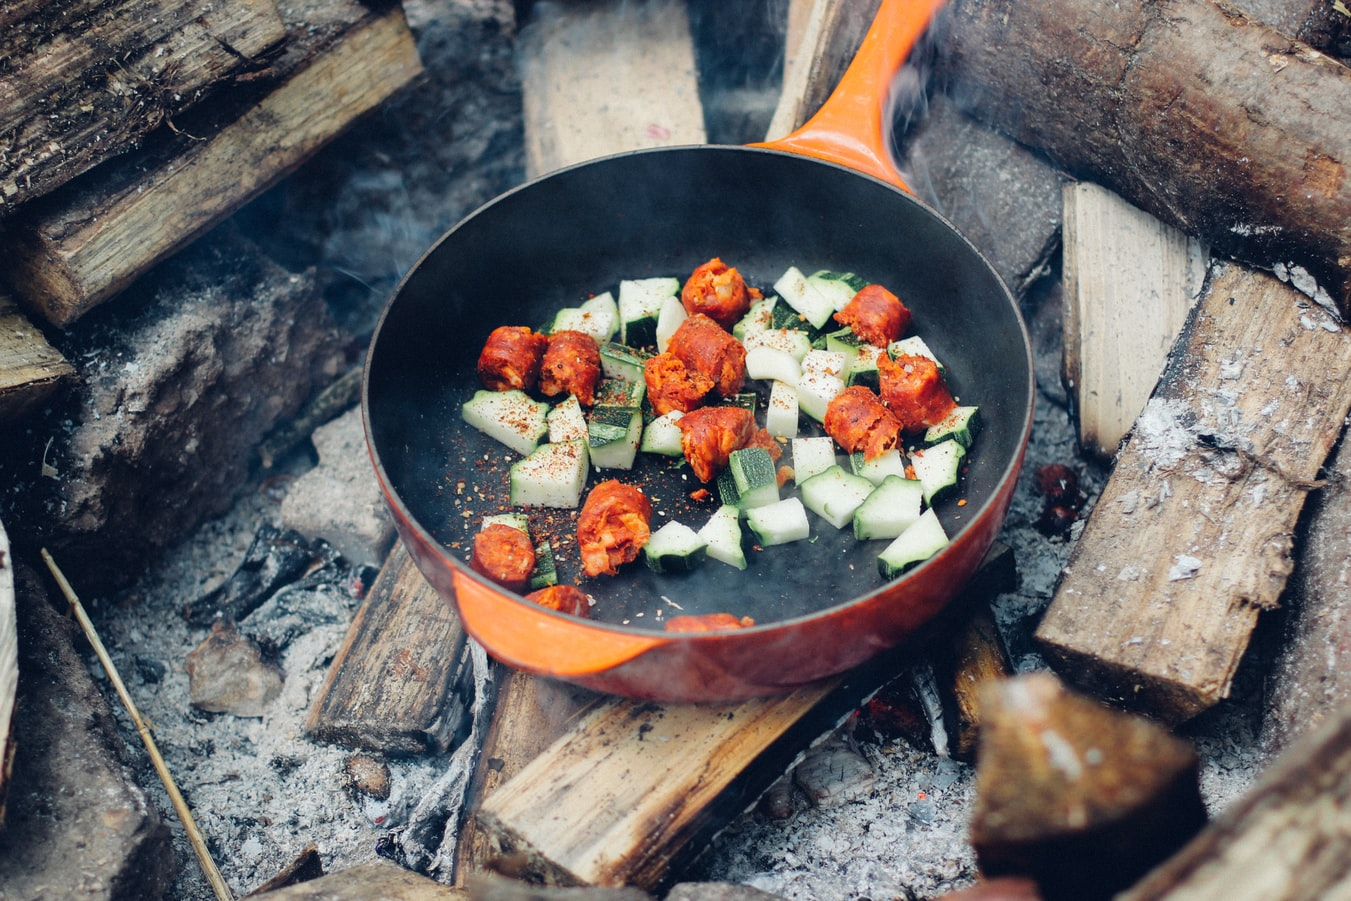 Cooking Over a Fire - Top 5 Cozy Camp Site Dinner Scenes - La Mesa RV